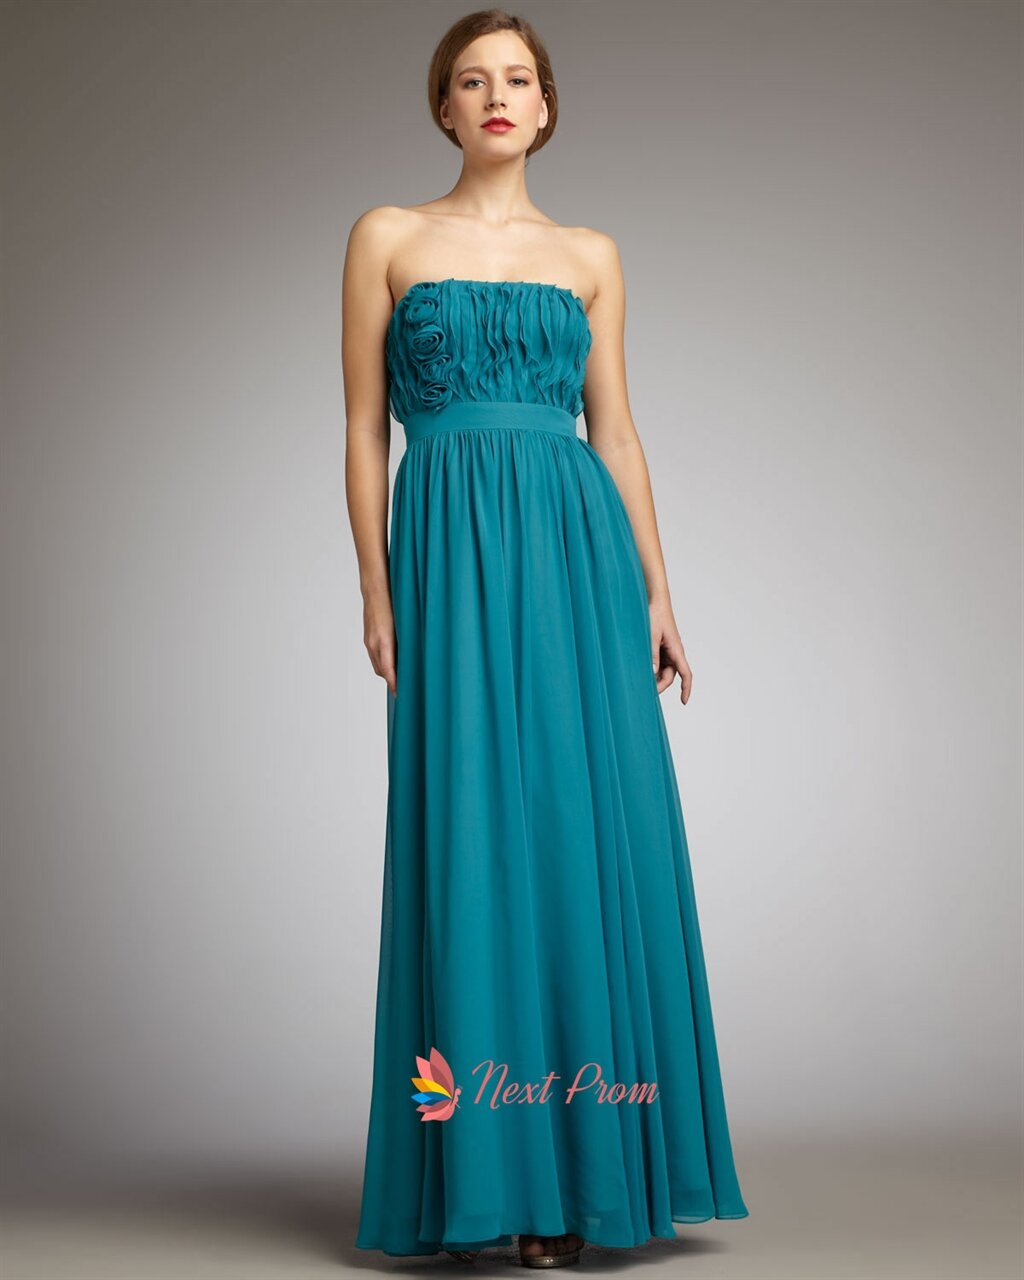 Teal dresses for wedding pictures ideas guide to buying for Teal dress for wedding